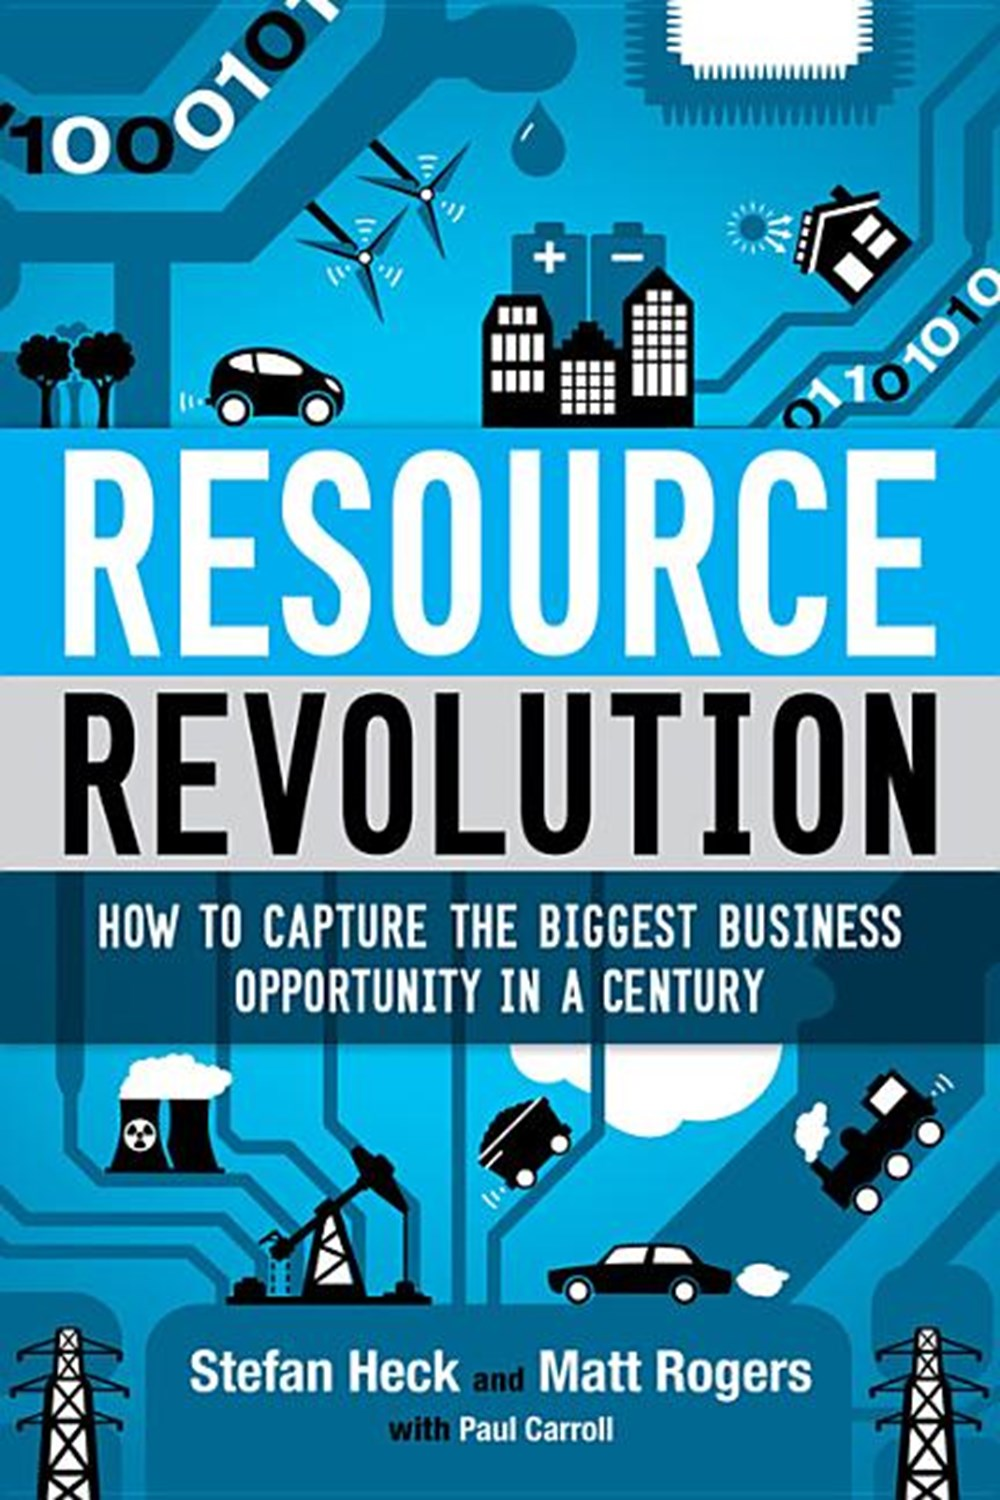 Resource Revolution How to Capture the Biggest Business Opportunity in a Century